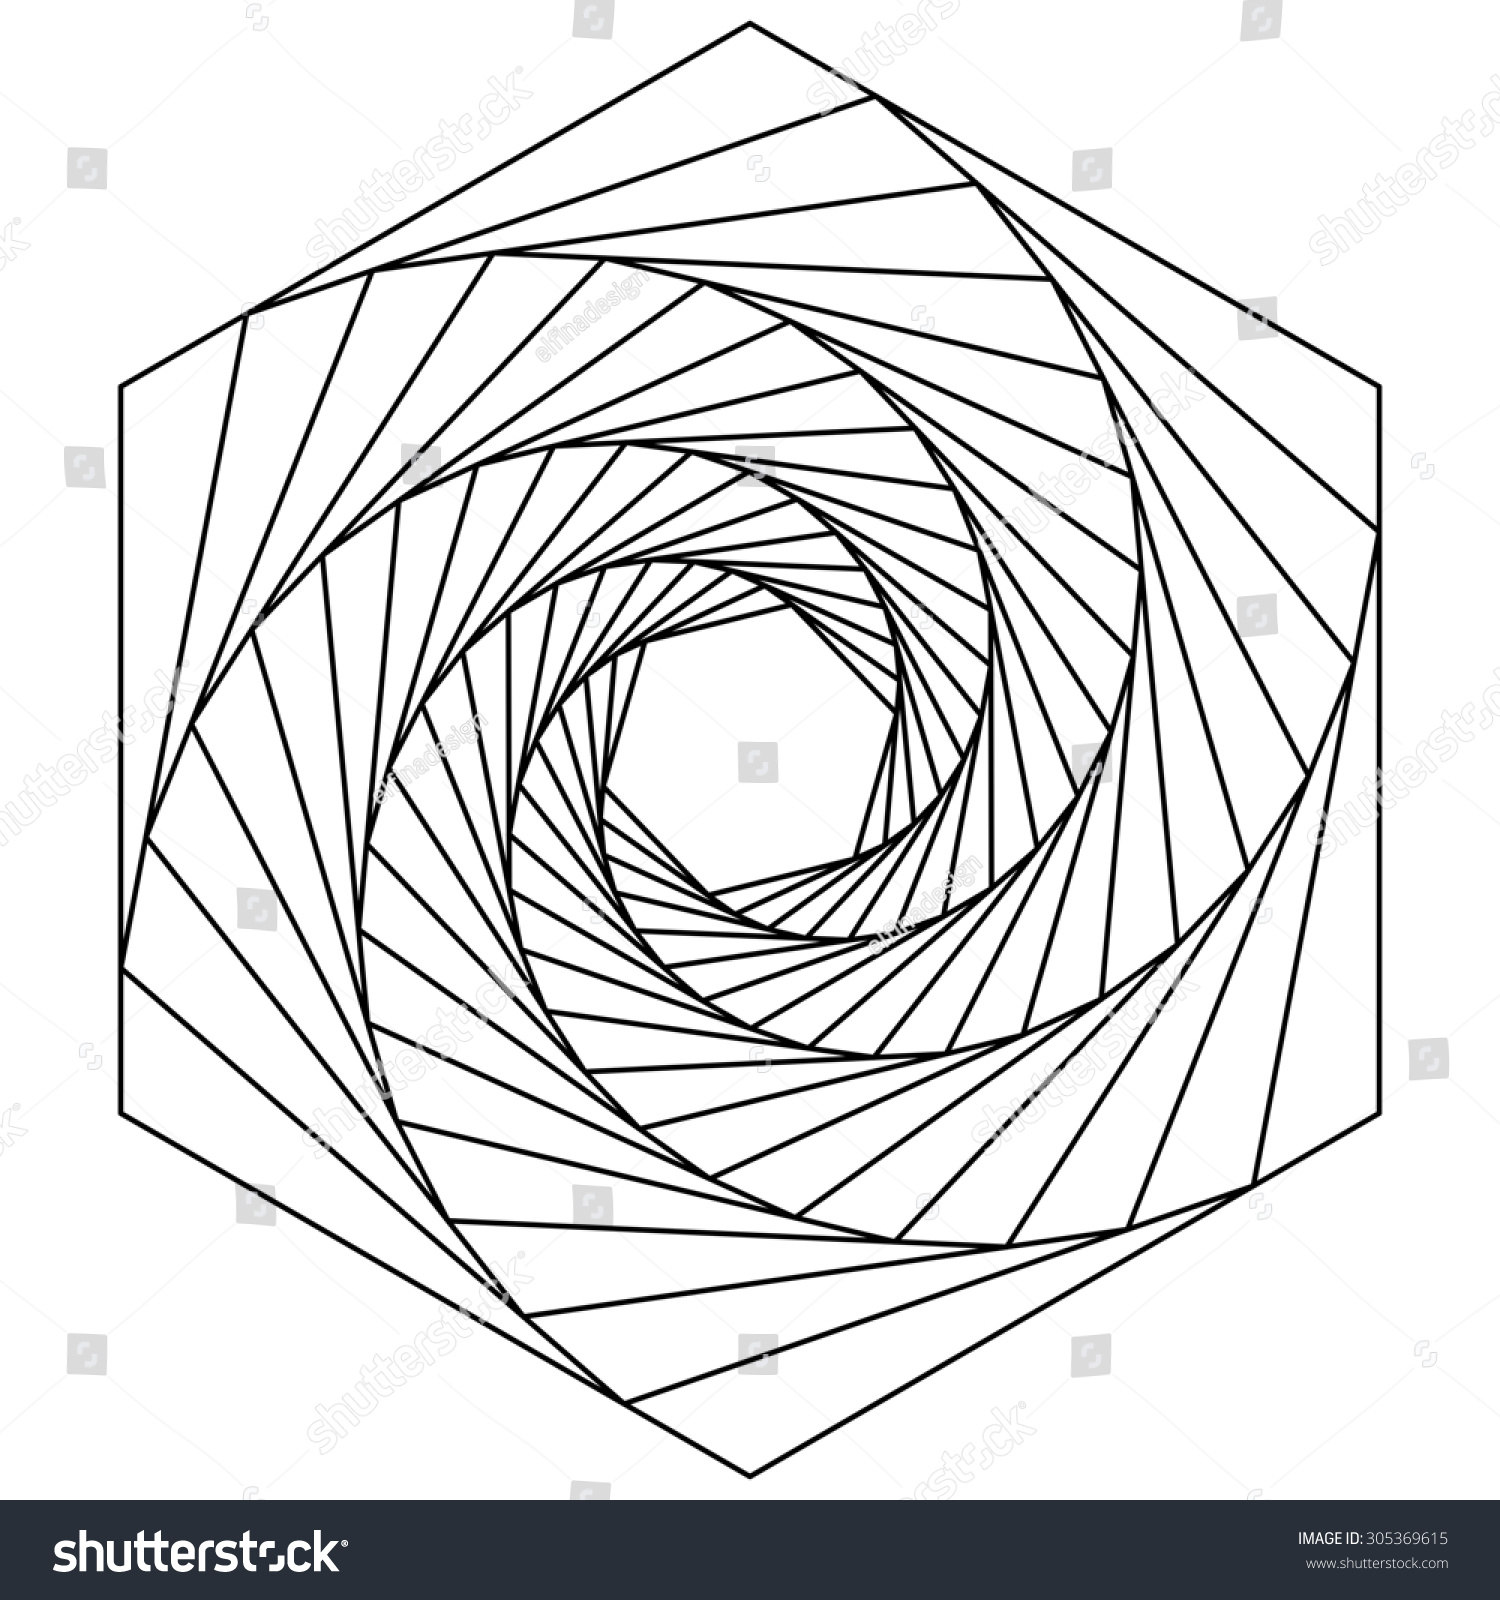 Vector Drawing Lines Review : Hexagon spiral line drawing logo design stock vector